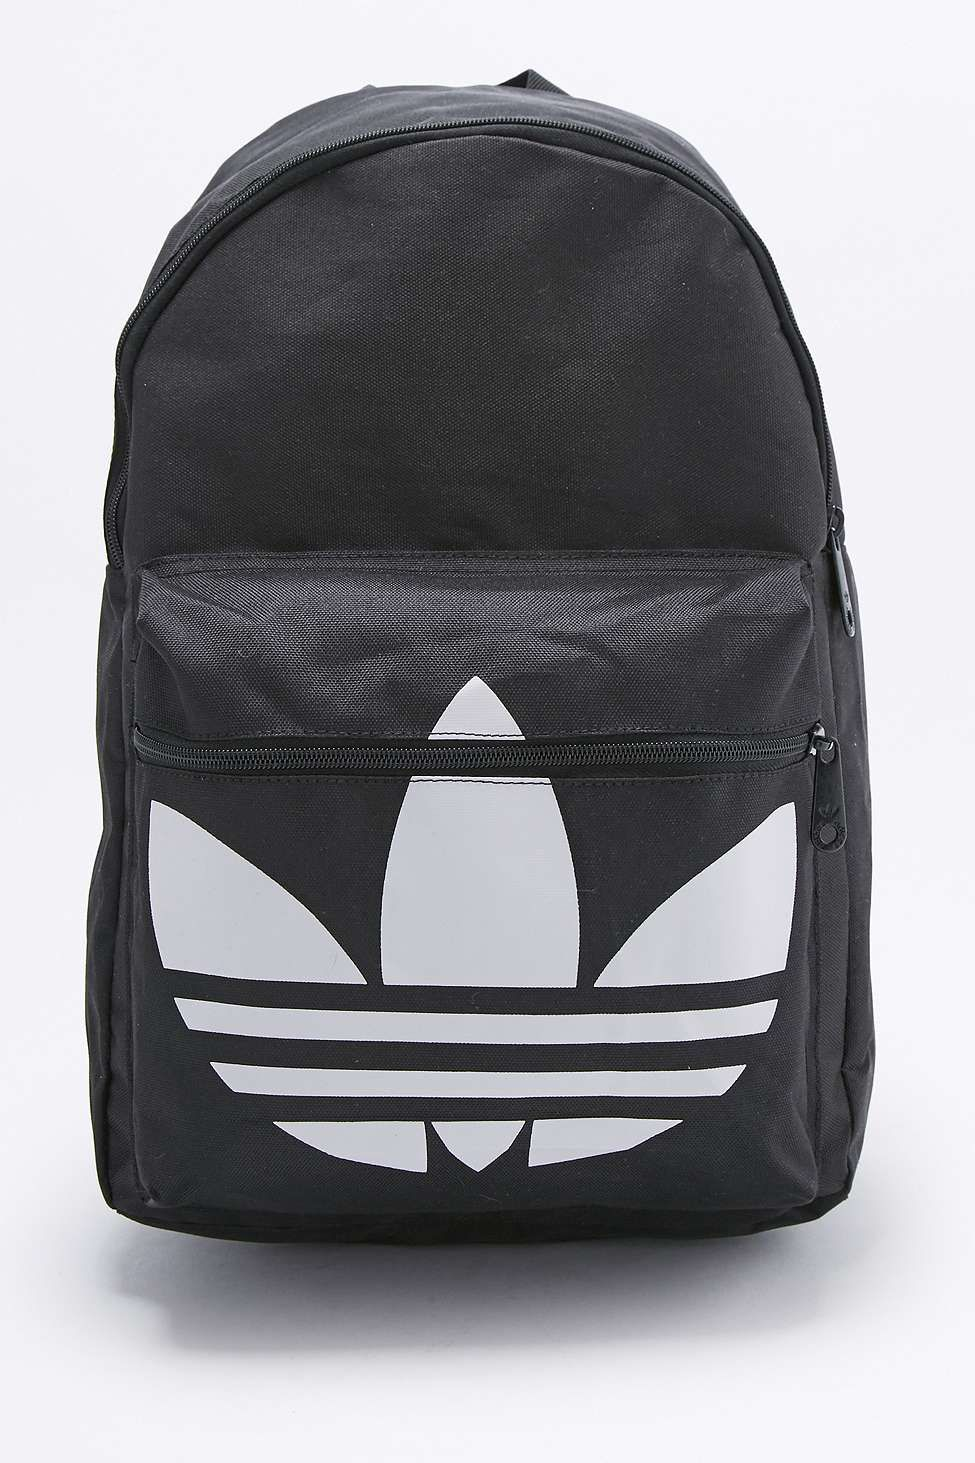 30a2b7f04a adidas Originals Classic Trefoil Black Backpack | Back to school ...